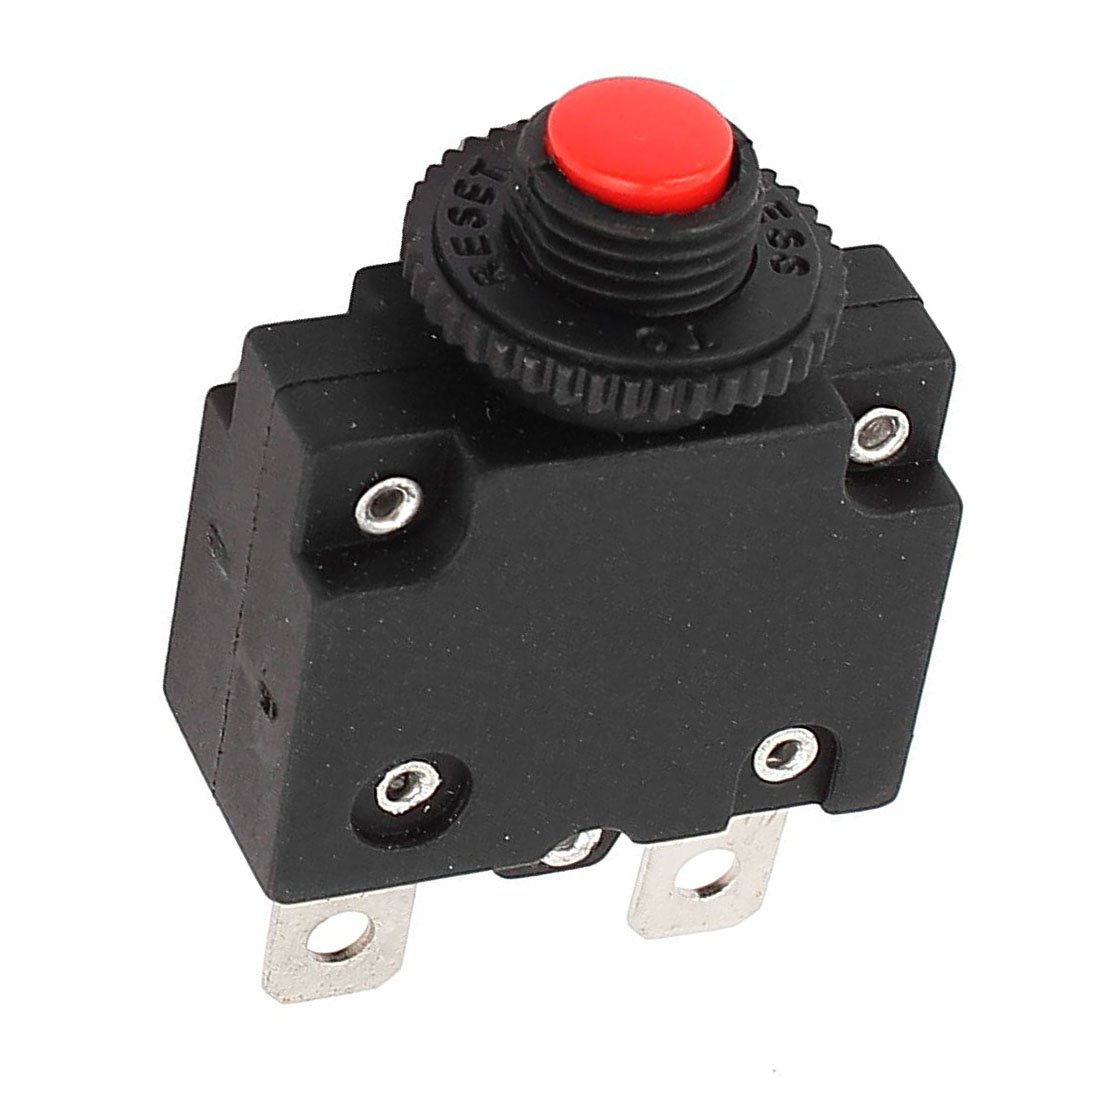 Overload Protector Switch - TOOGOO(R) AC 125/250V 20A Air Compressor Circuit Breaker Overload Protector Switch by TOOGOO(R) (Image #3)